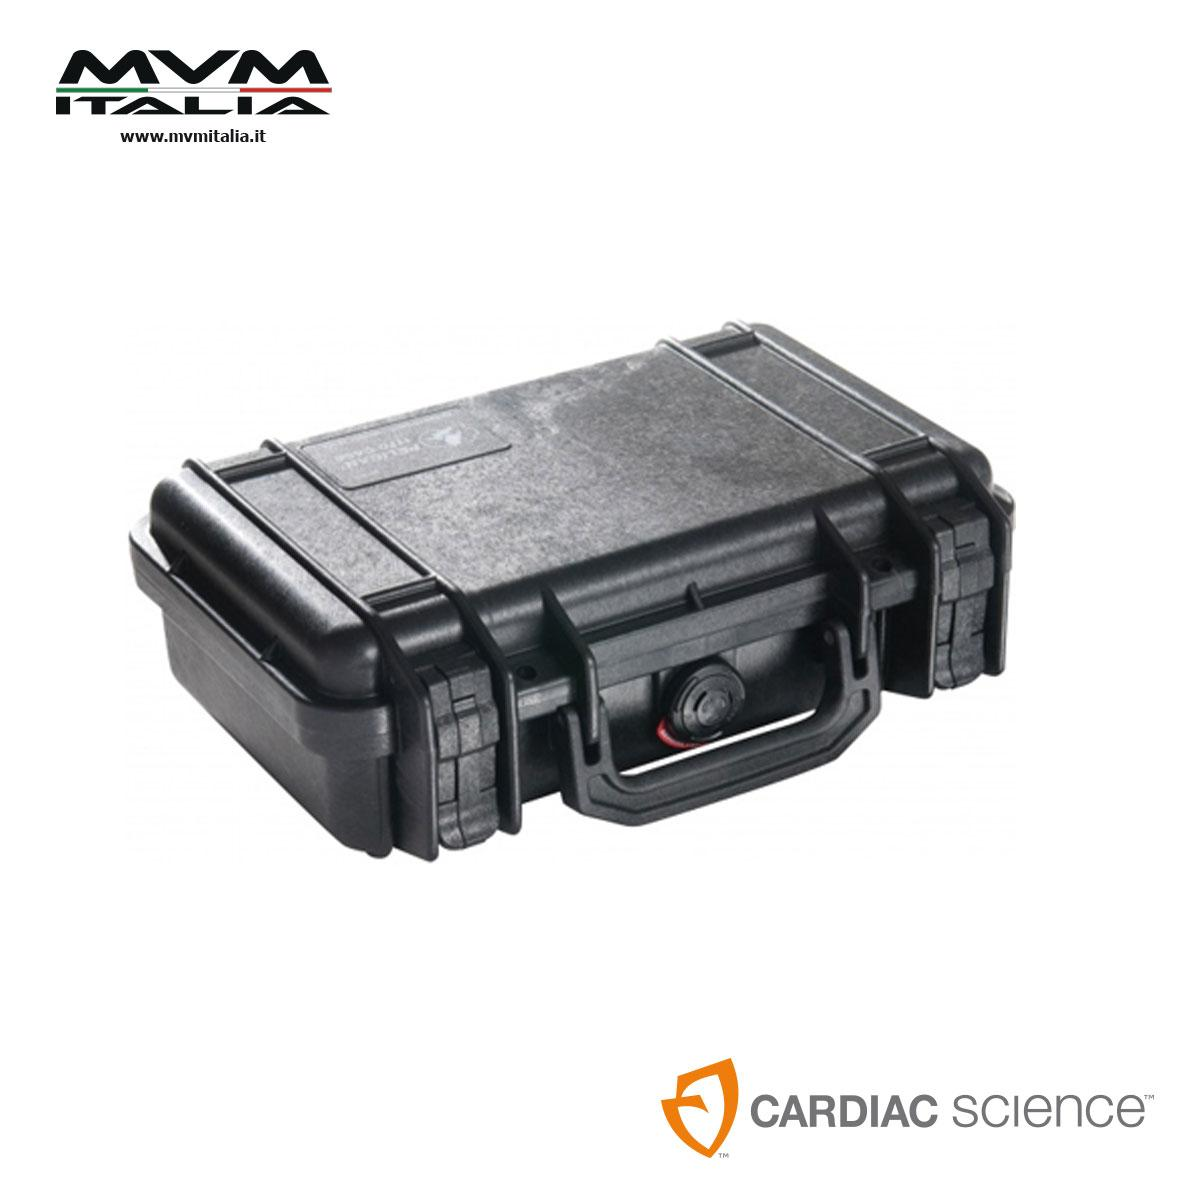 Custodia pelican per defibrillatore CARDIAC science Powerheart G5